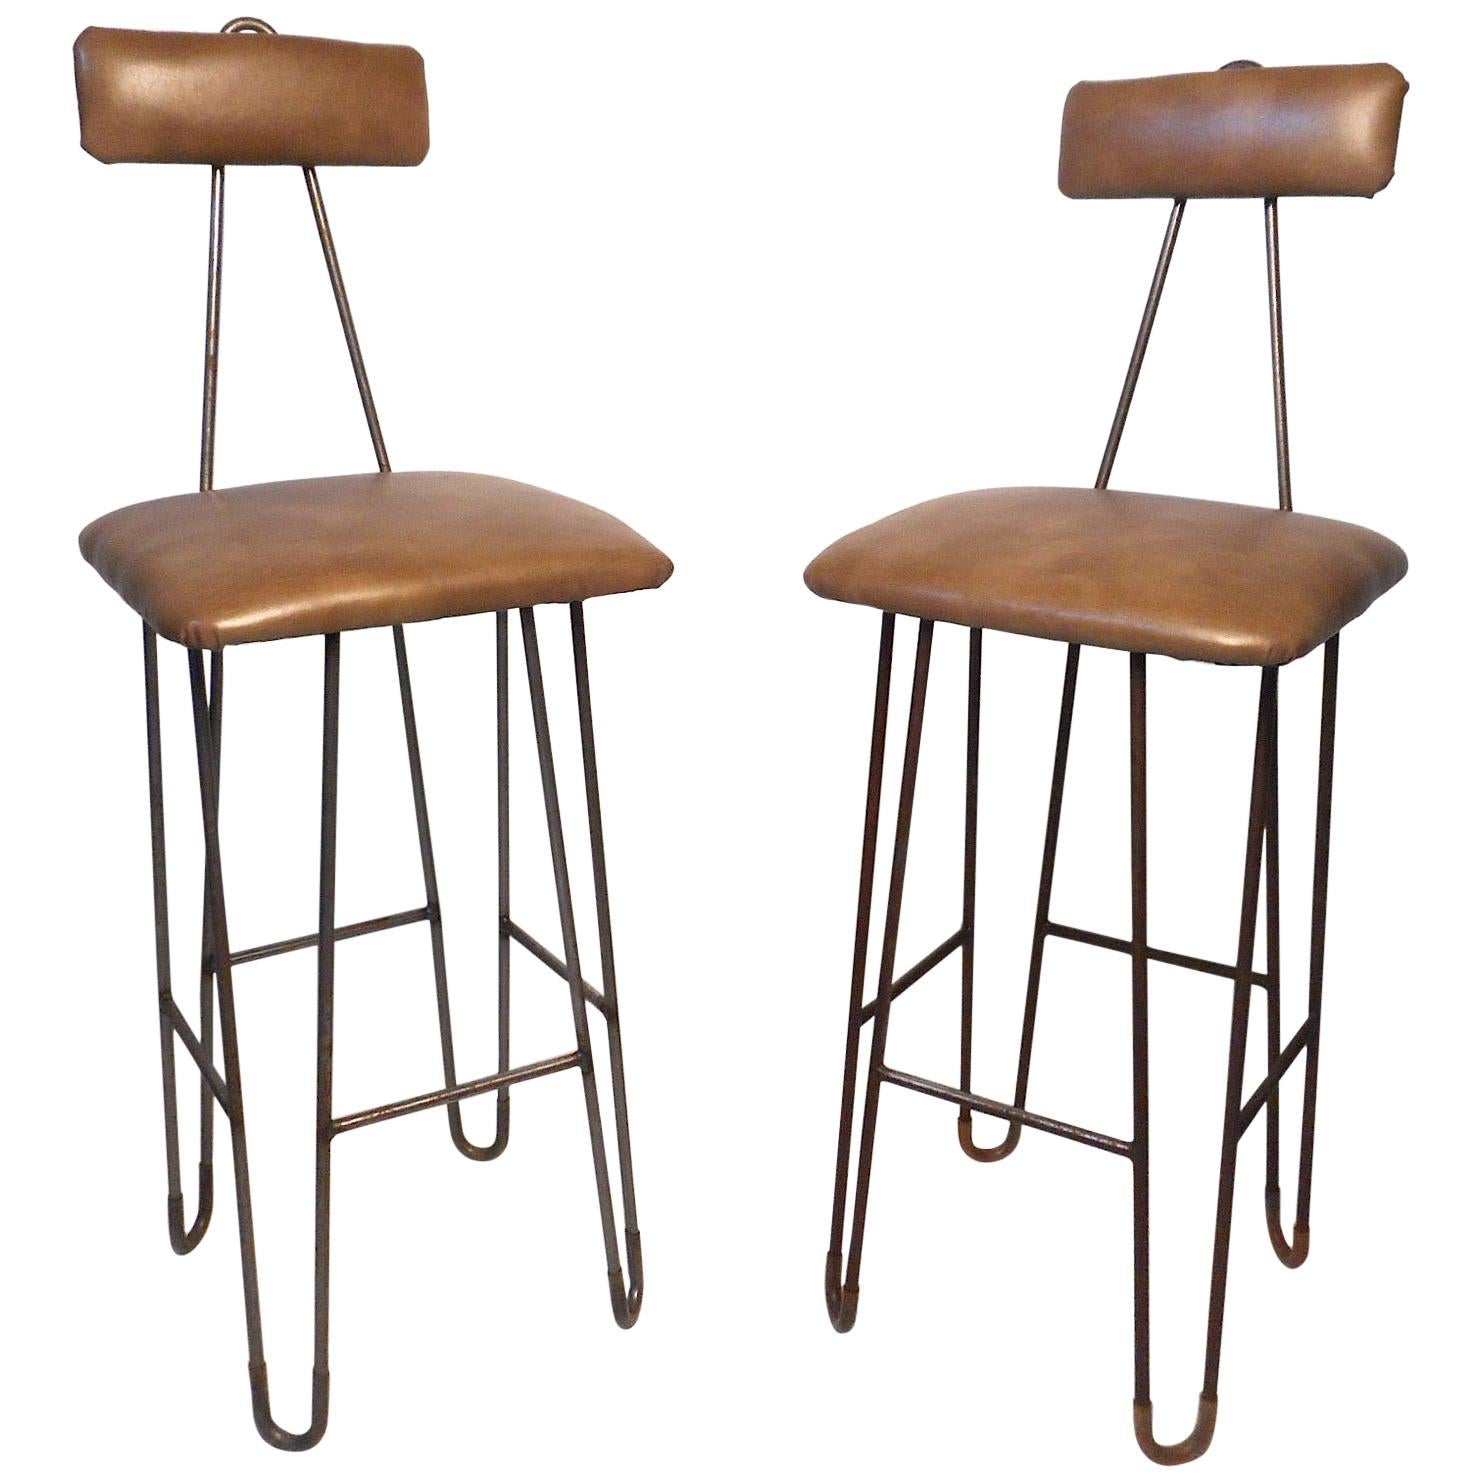 Remarkable Mid Century Ranchboy Stool Pabps2019 Chair Design Images Pabps2019Com